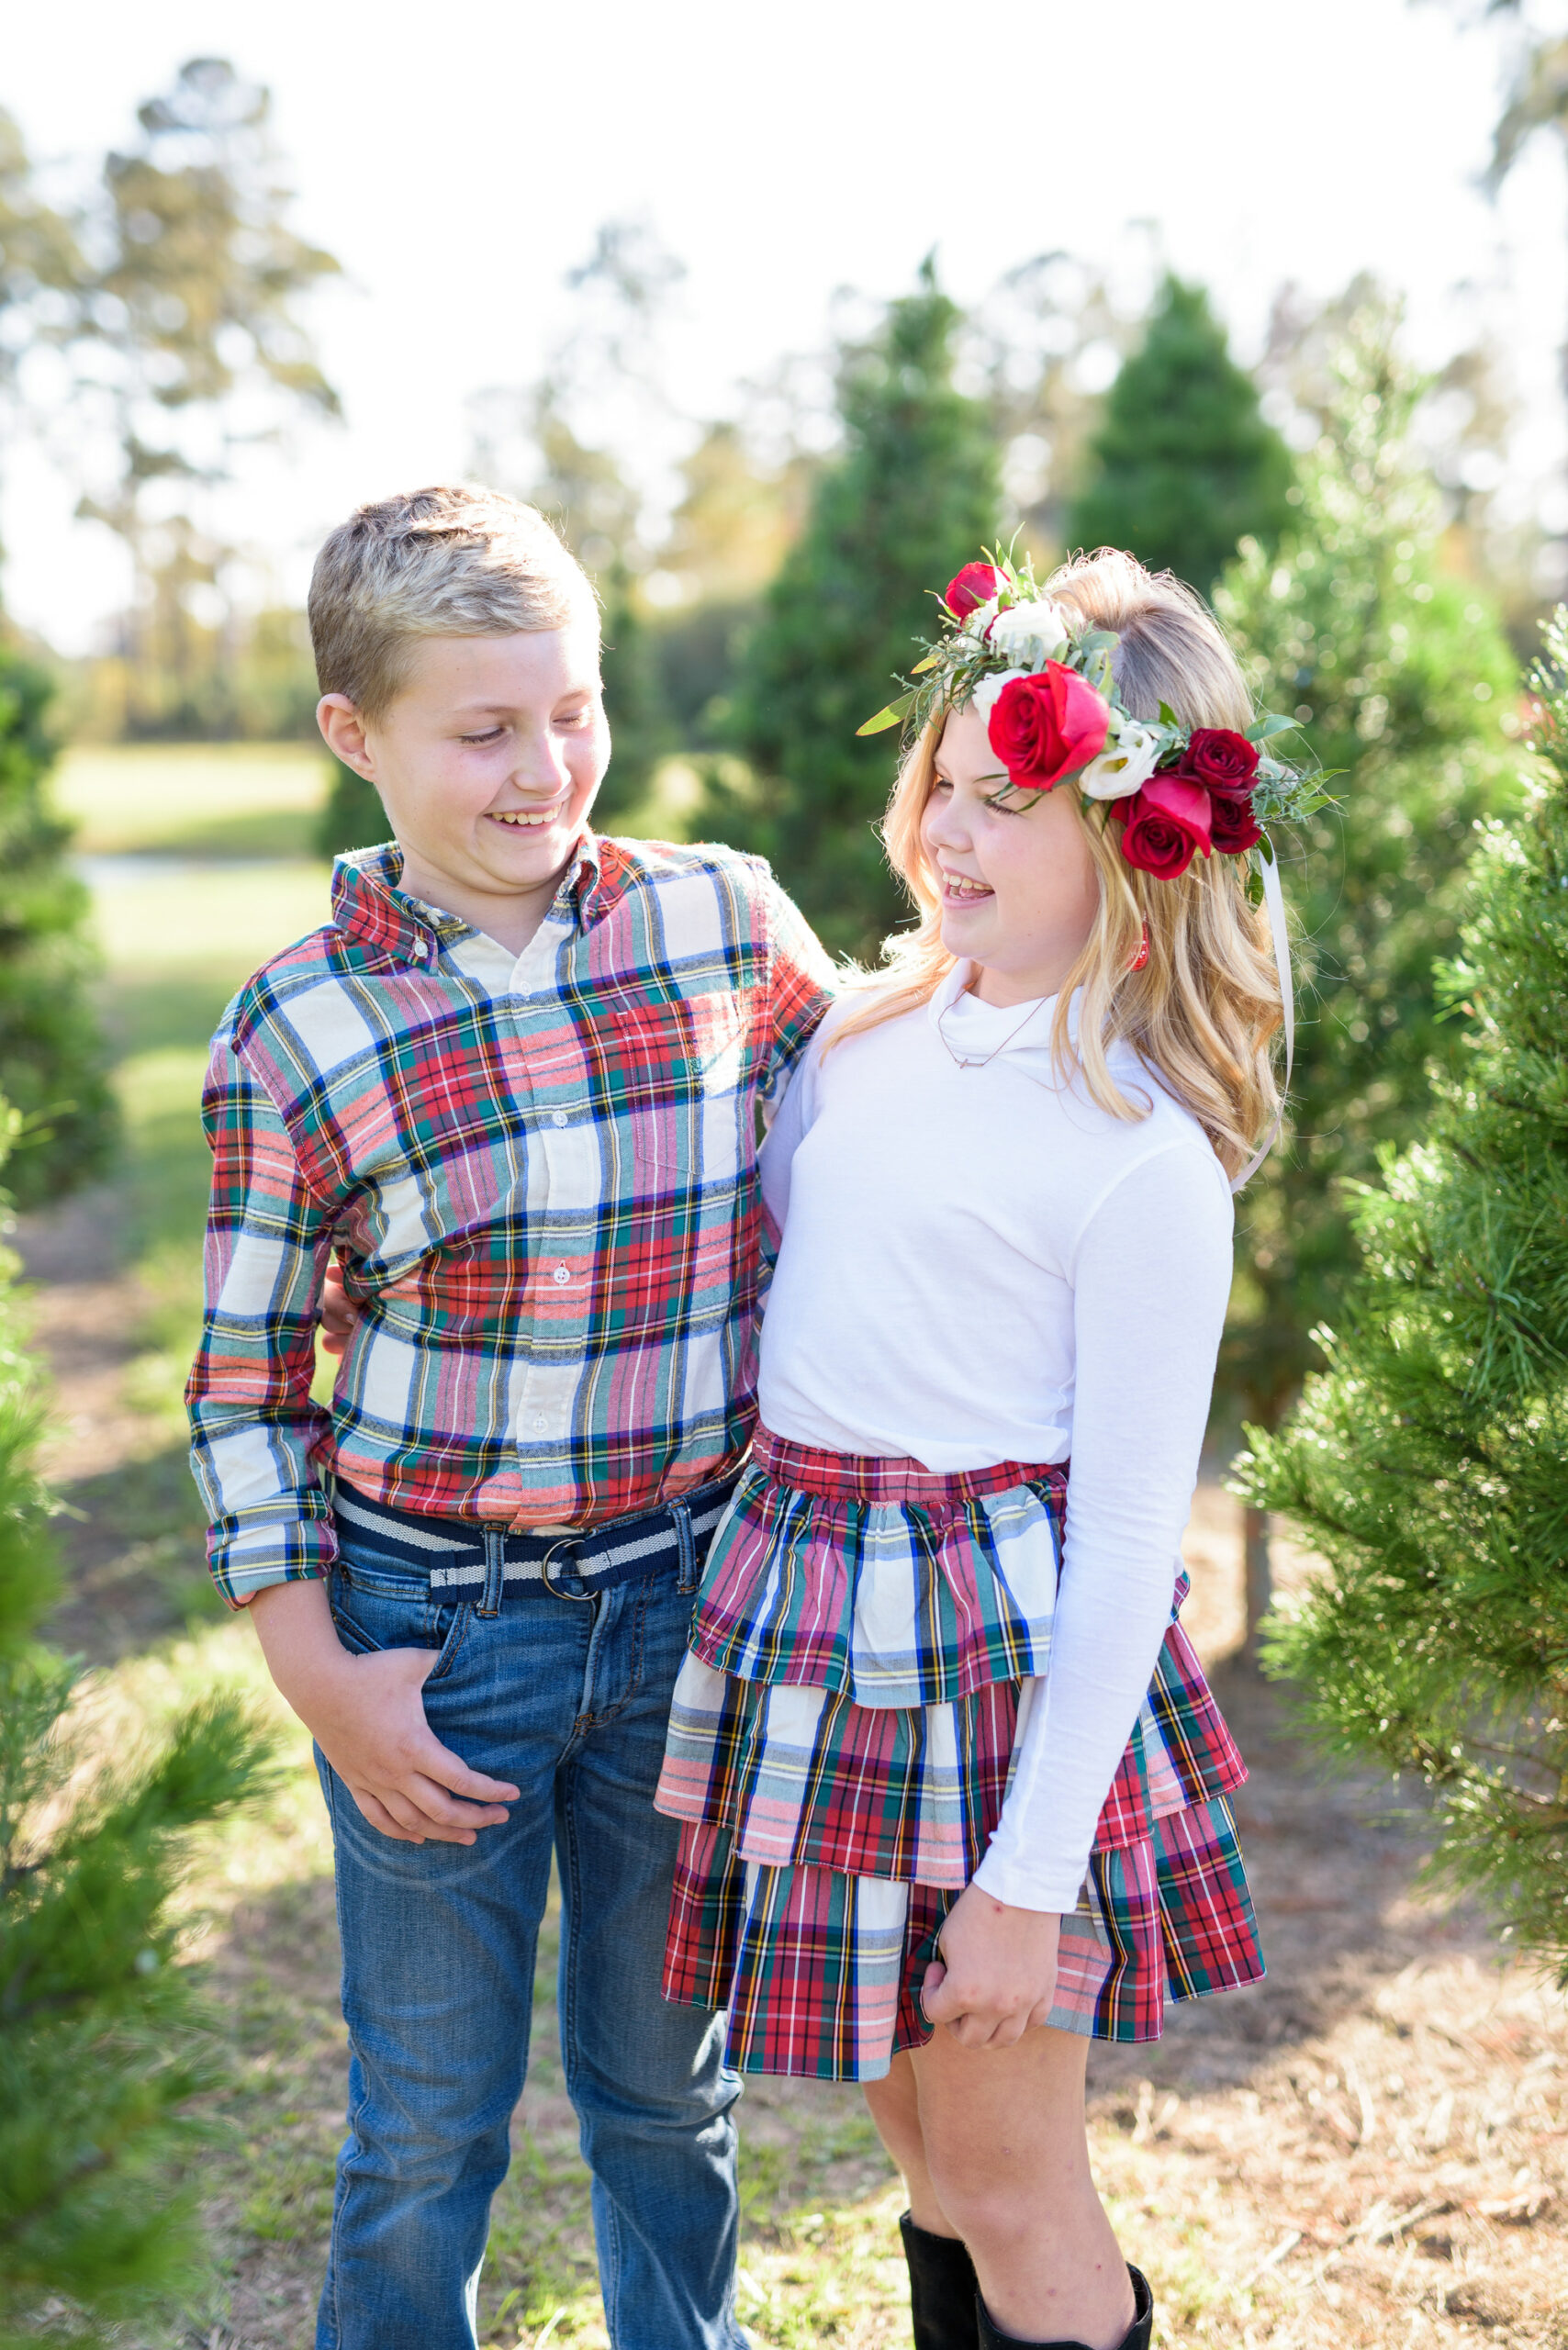 Christmas Tree Farm Photos by popular Houston lifestyle blog, Fancy Ashley: image of a young boy and girl standing together in a row of pine trees and wearing a white long sleeve turtleneck shirt, plaid tier ruffle skirt, flower crown, plaid button up shirt, and jeans.